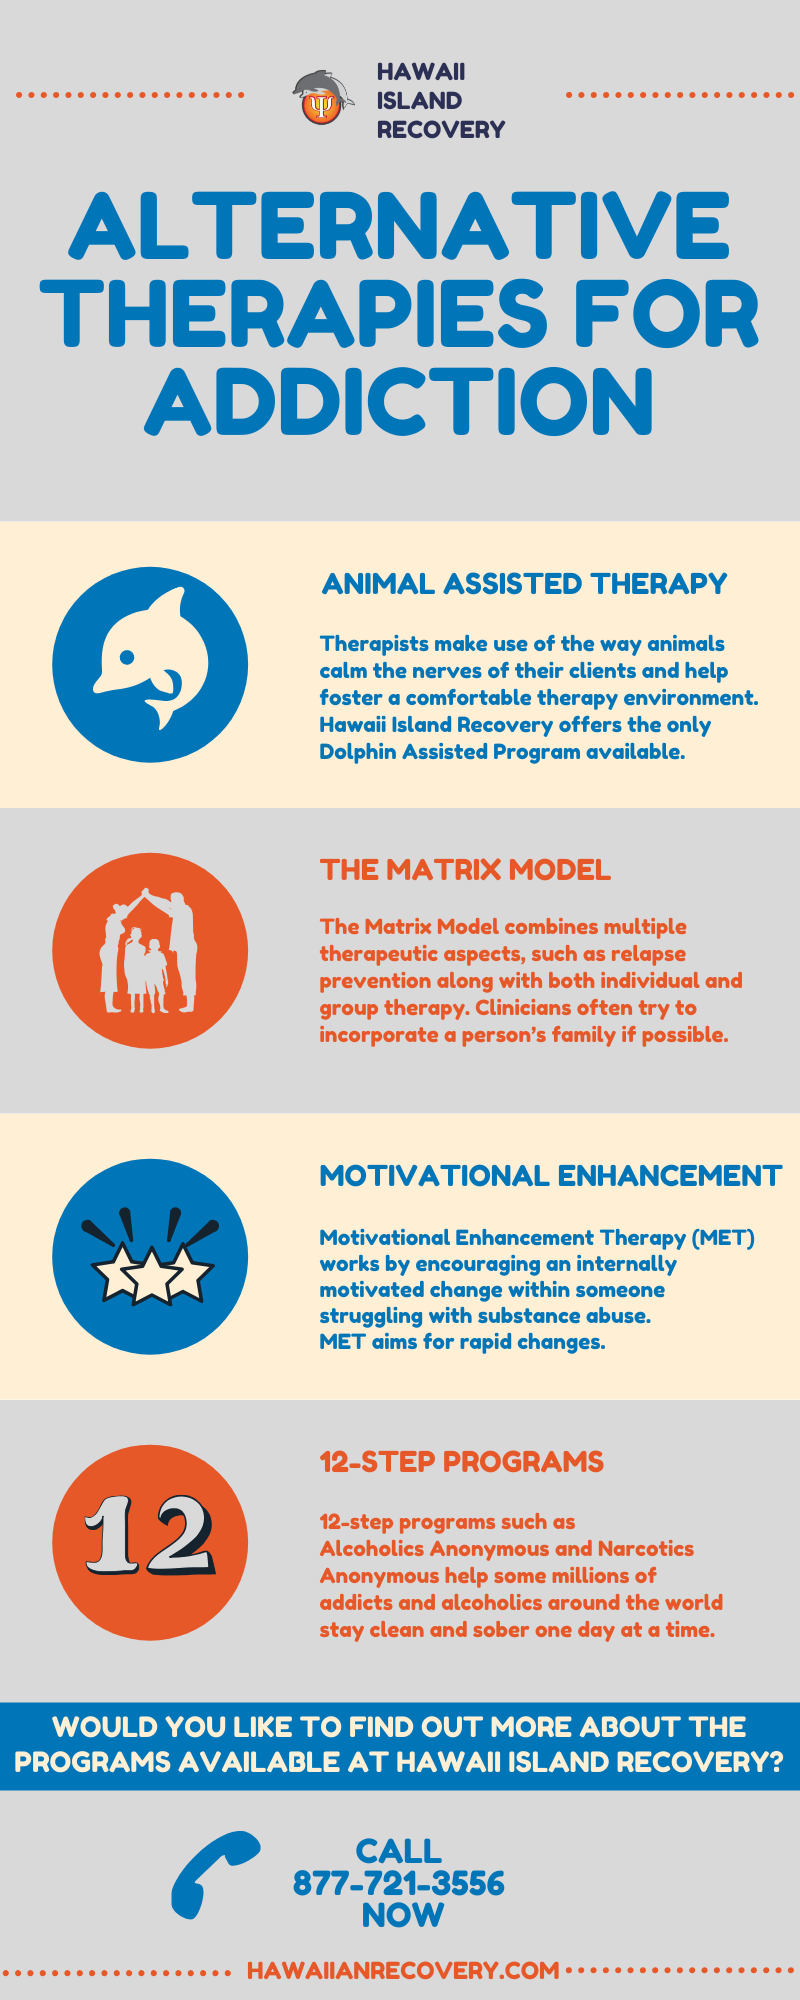 Alternative therapies for addiction